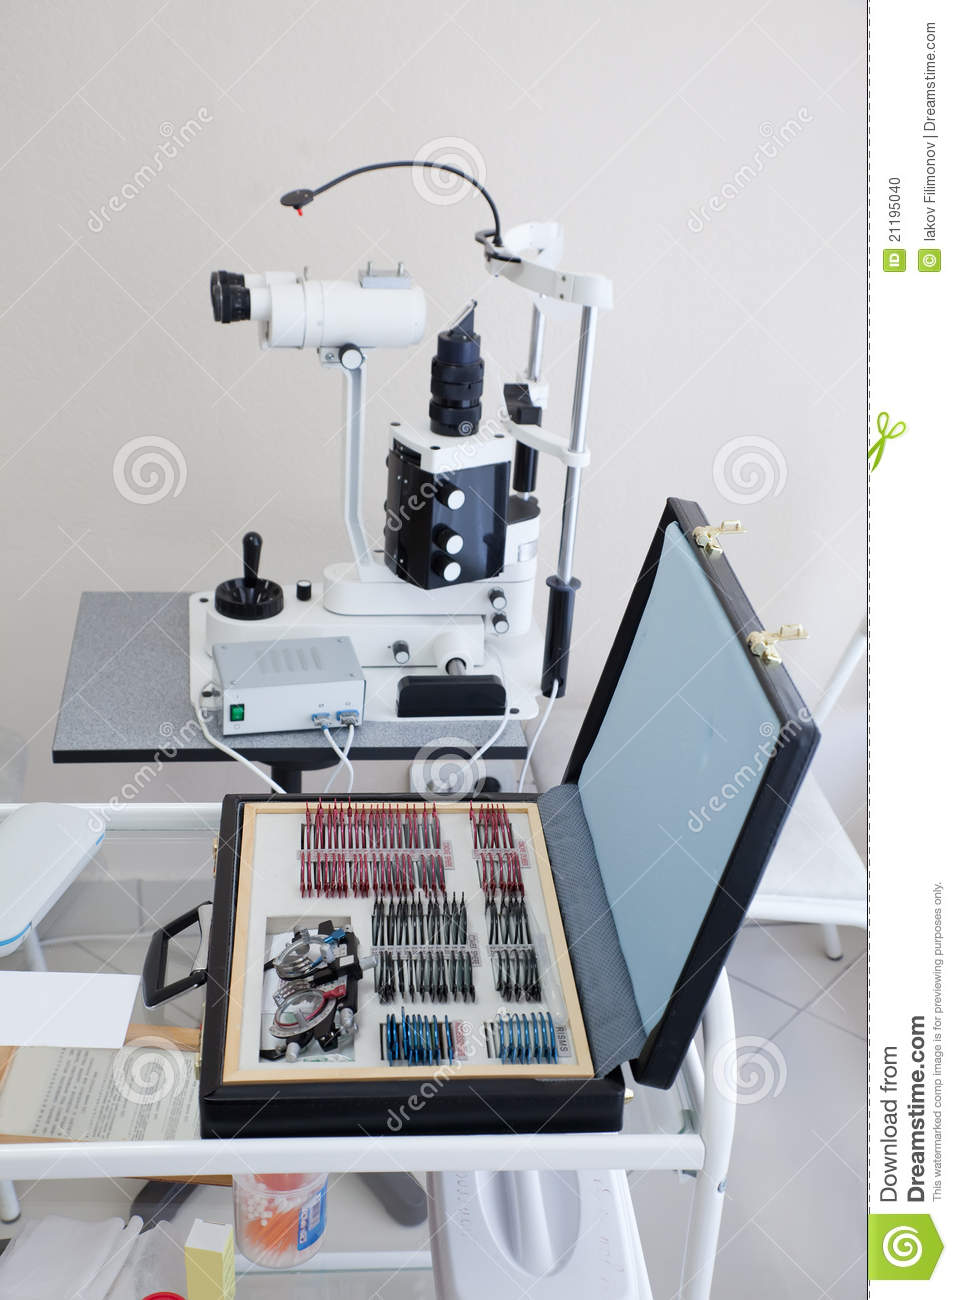 Medical tools in ophthalmologist room